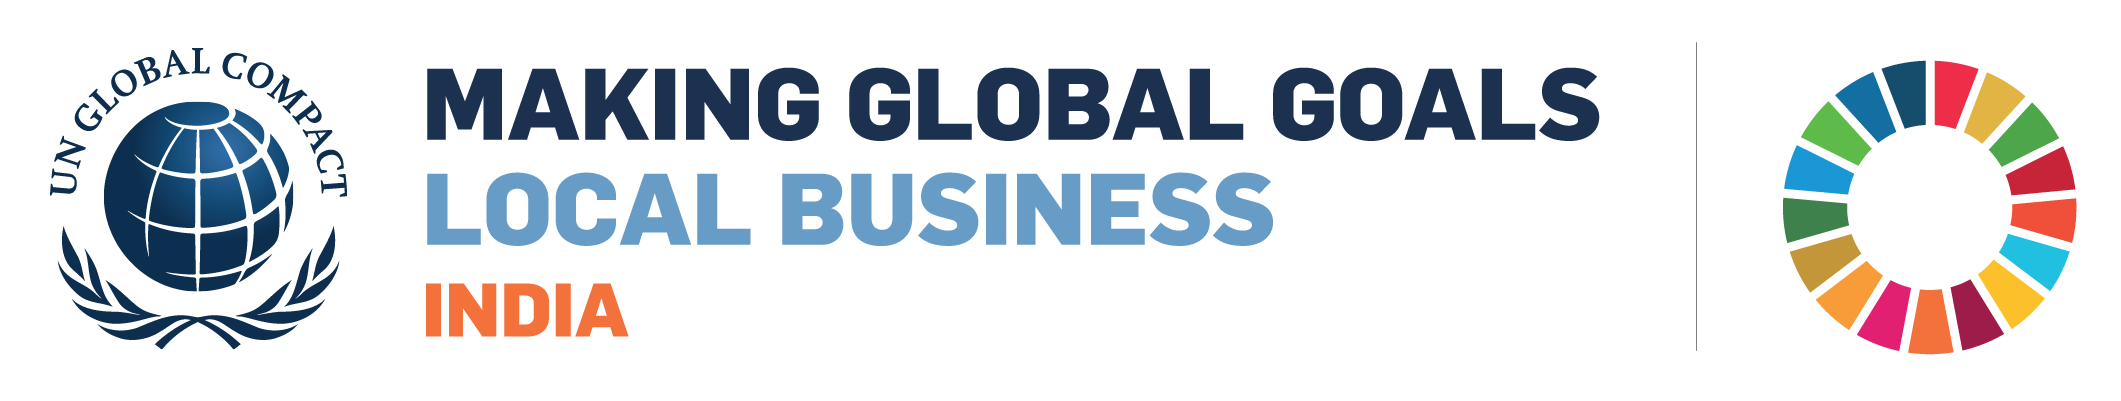 https://www.unglobalcompact.org/take-action/events/making-global-goals-local-business-india